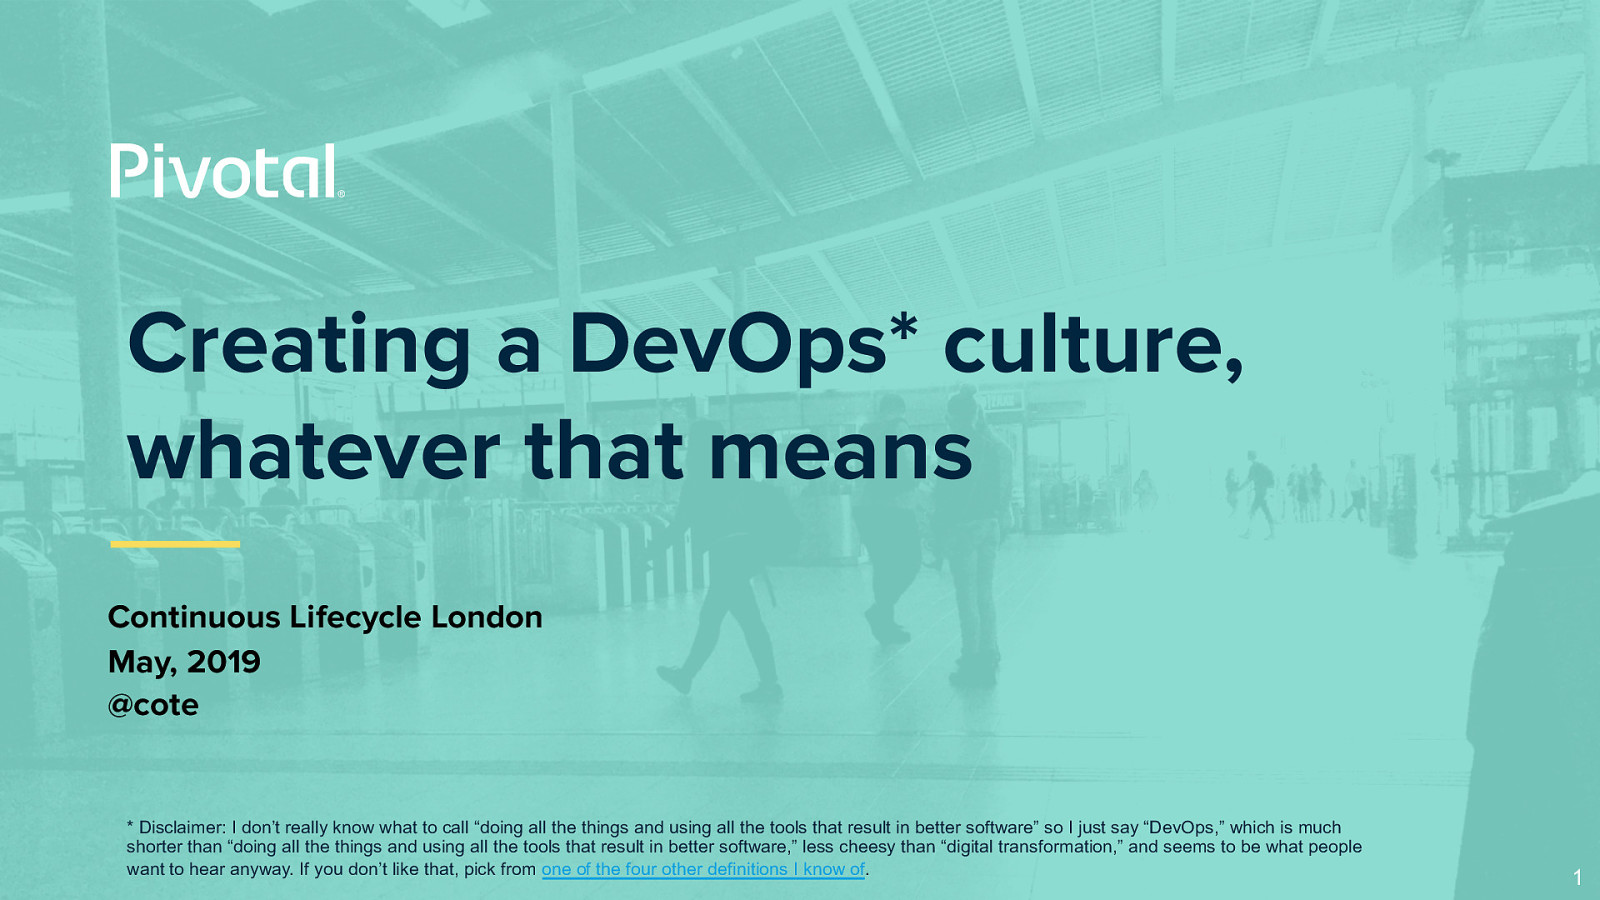 Creating a DevOps culture, whatever that means